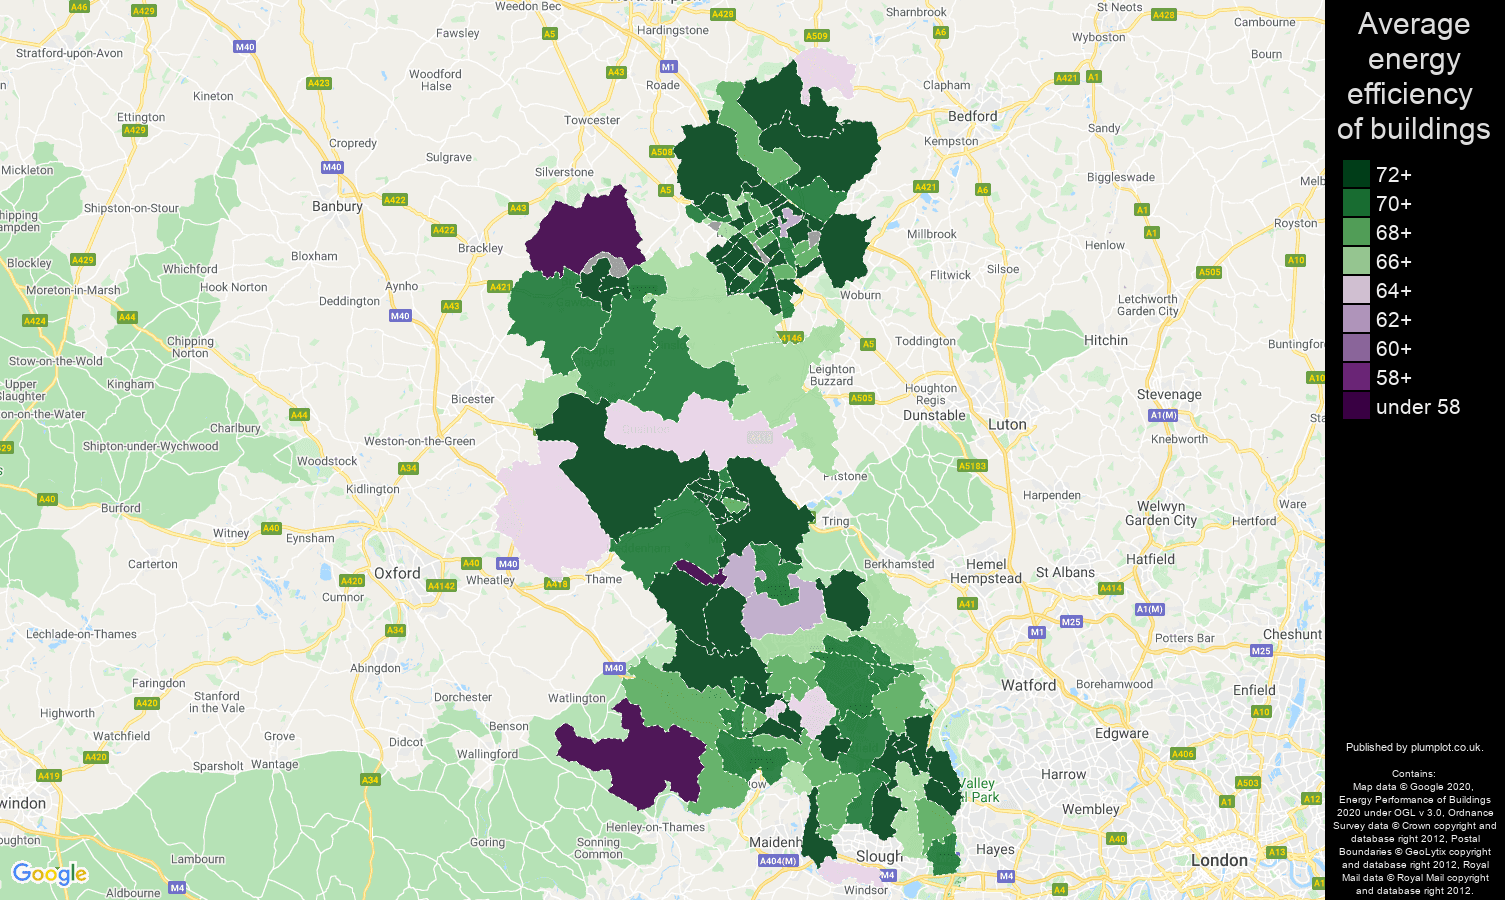 Buckinghamshire map of energy efficiency of flats